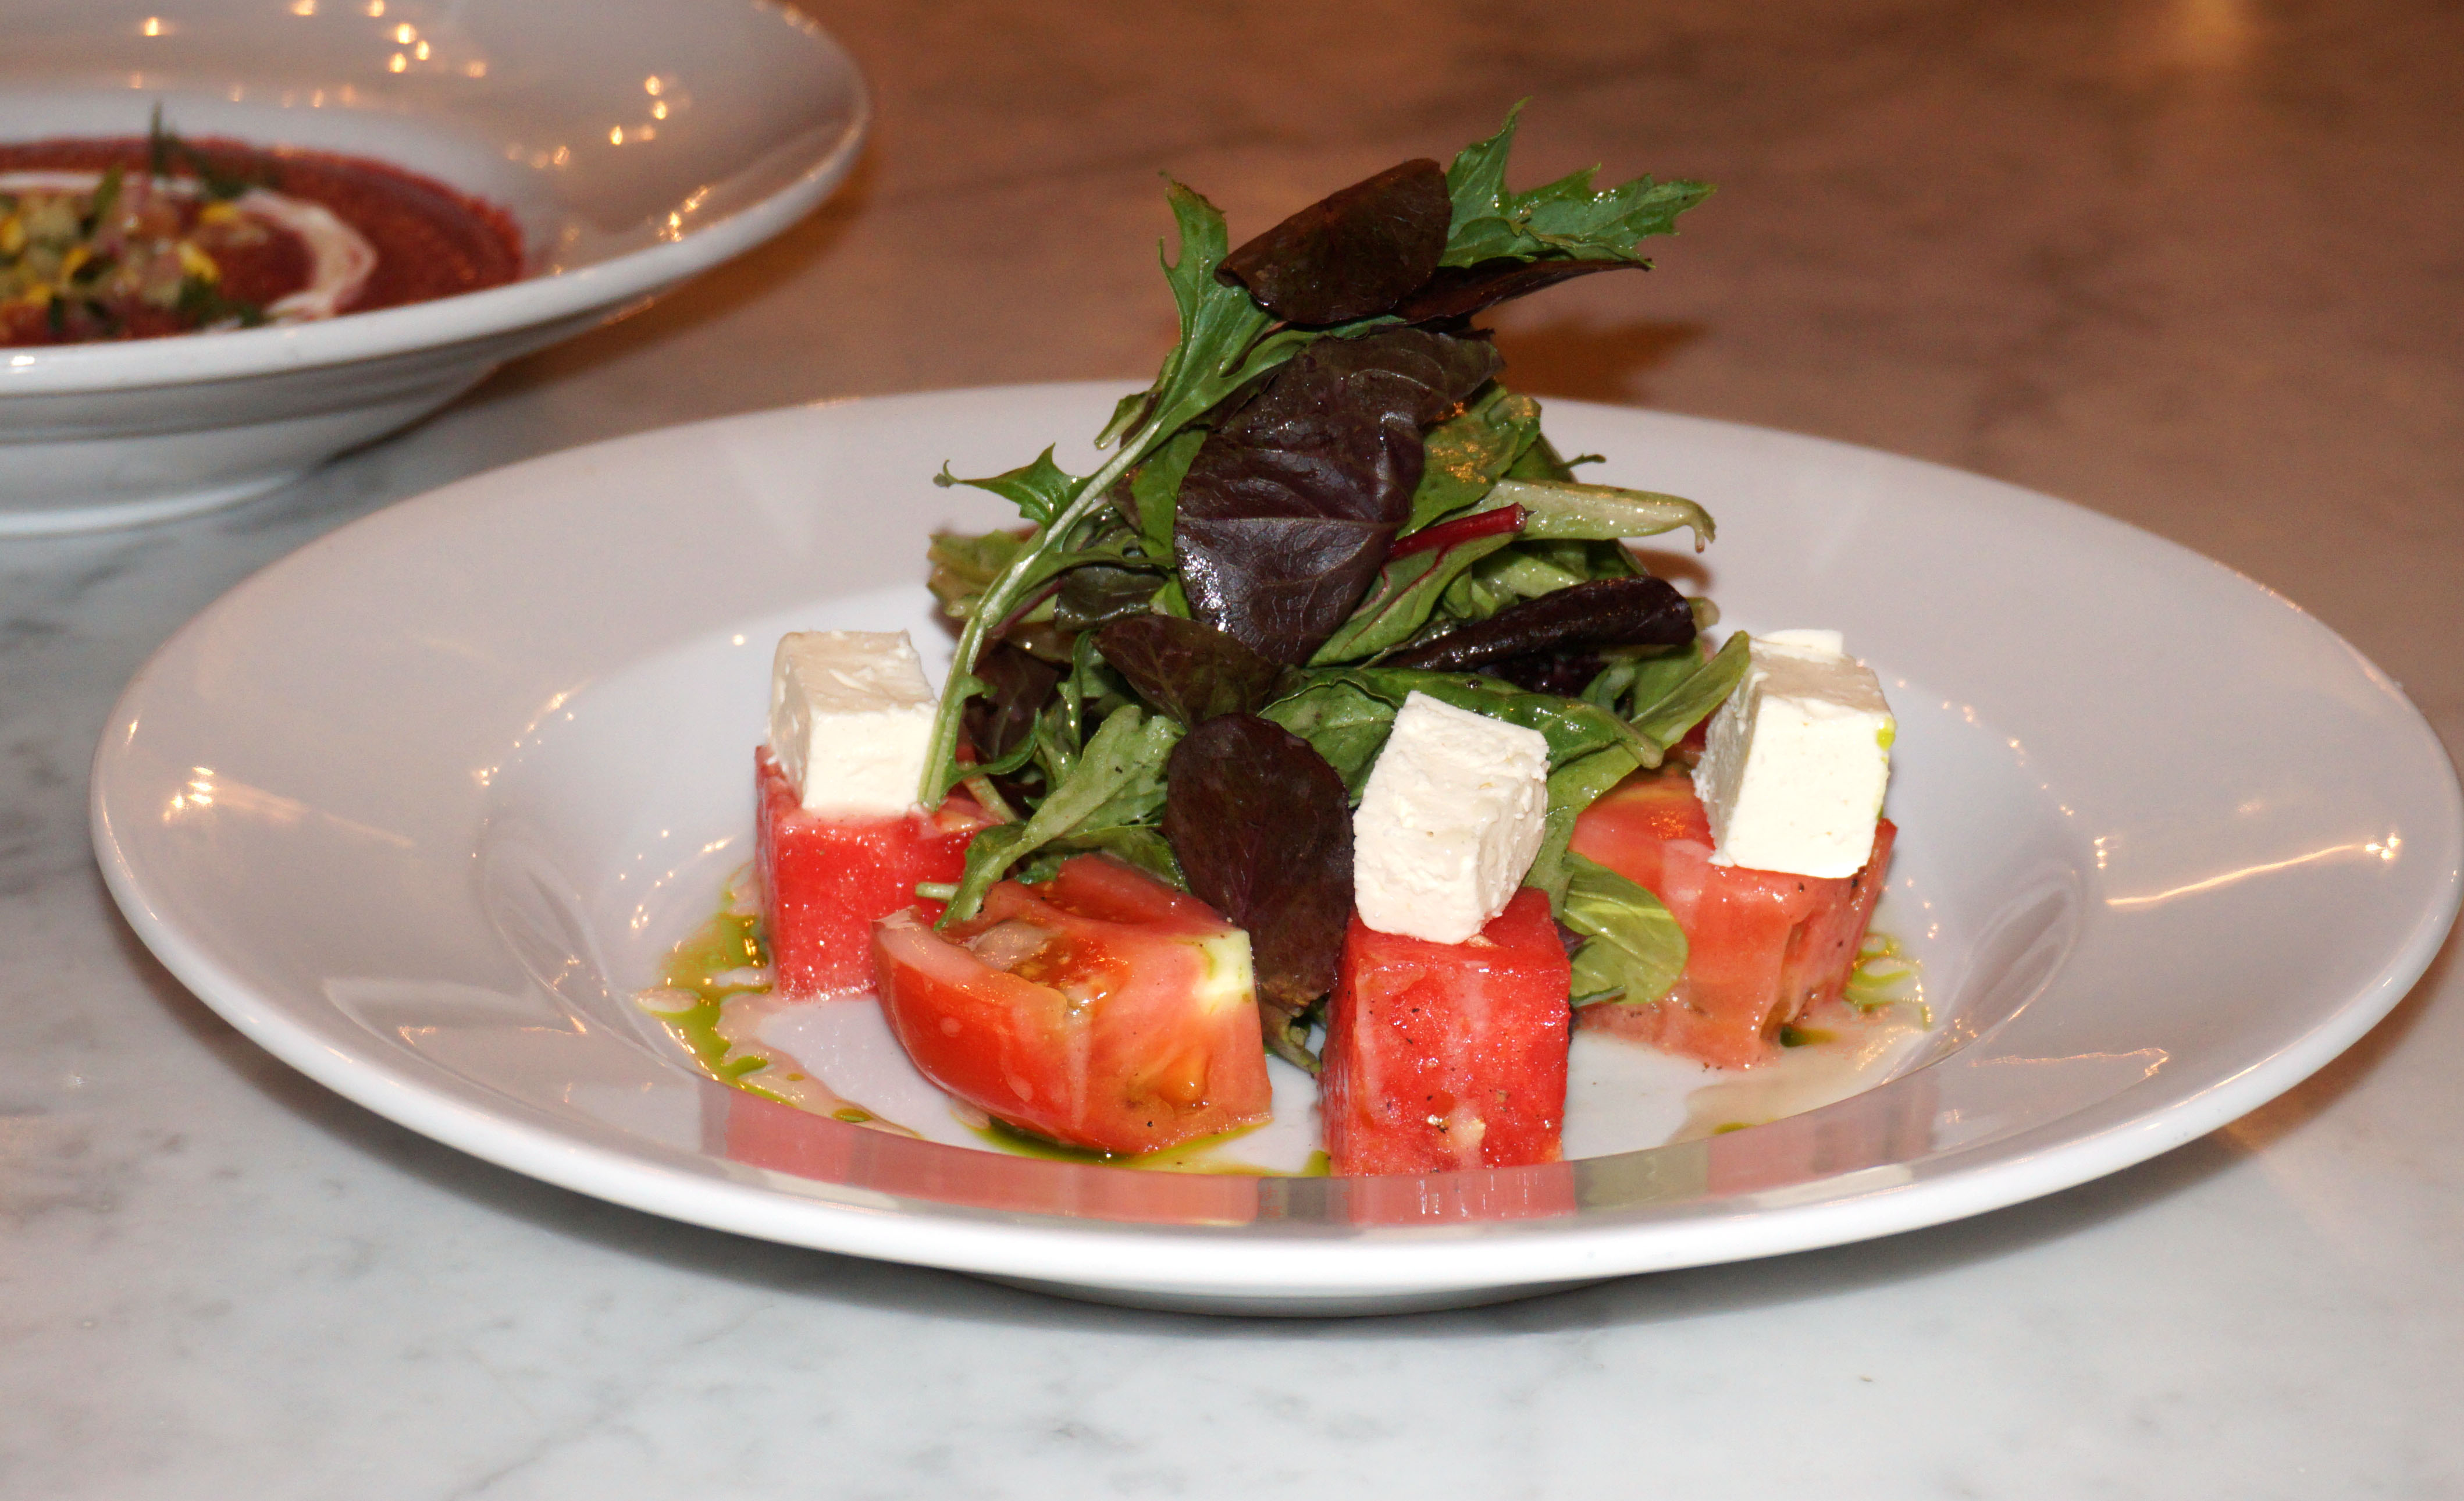 Watermelon salad Kutshers low